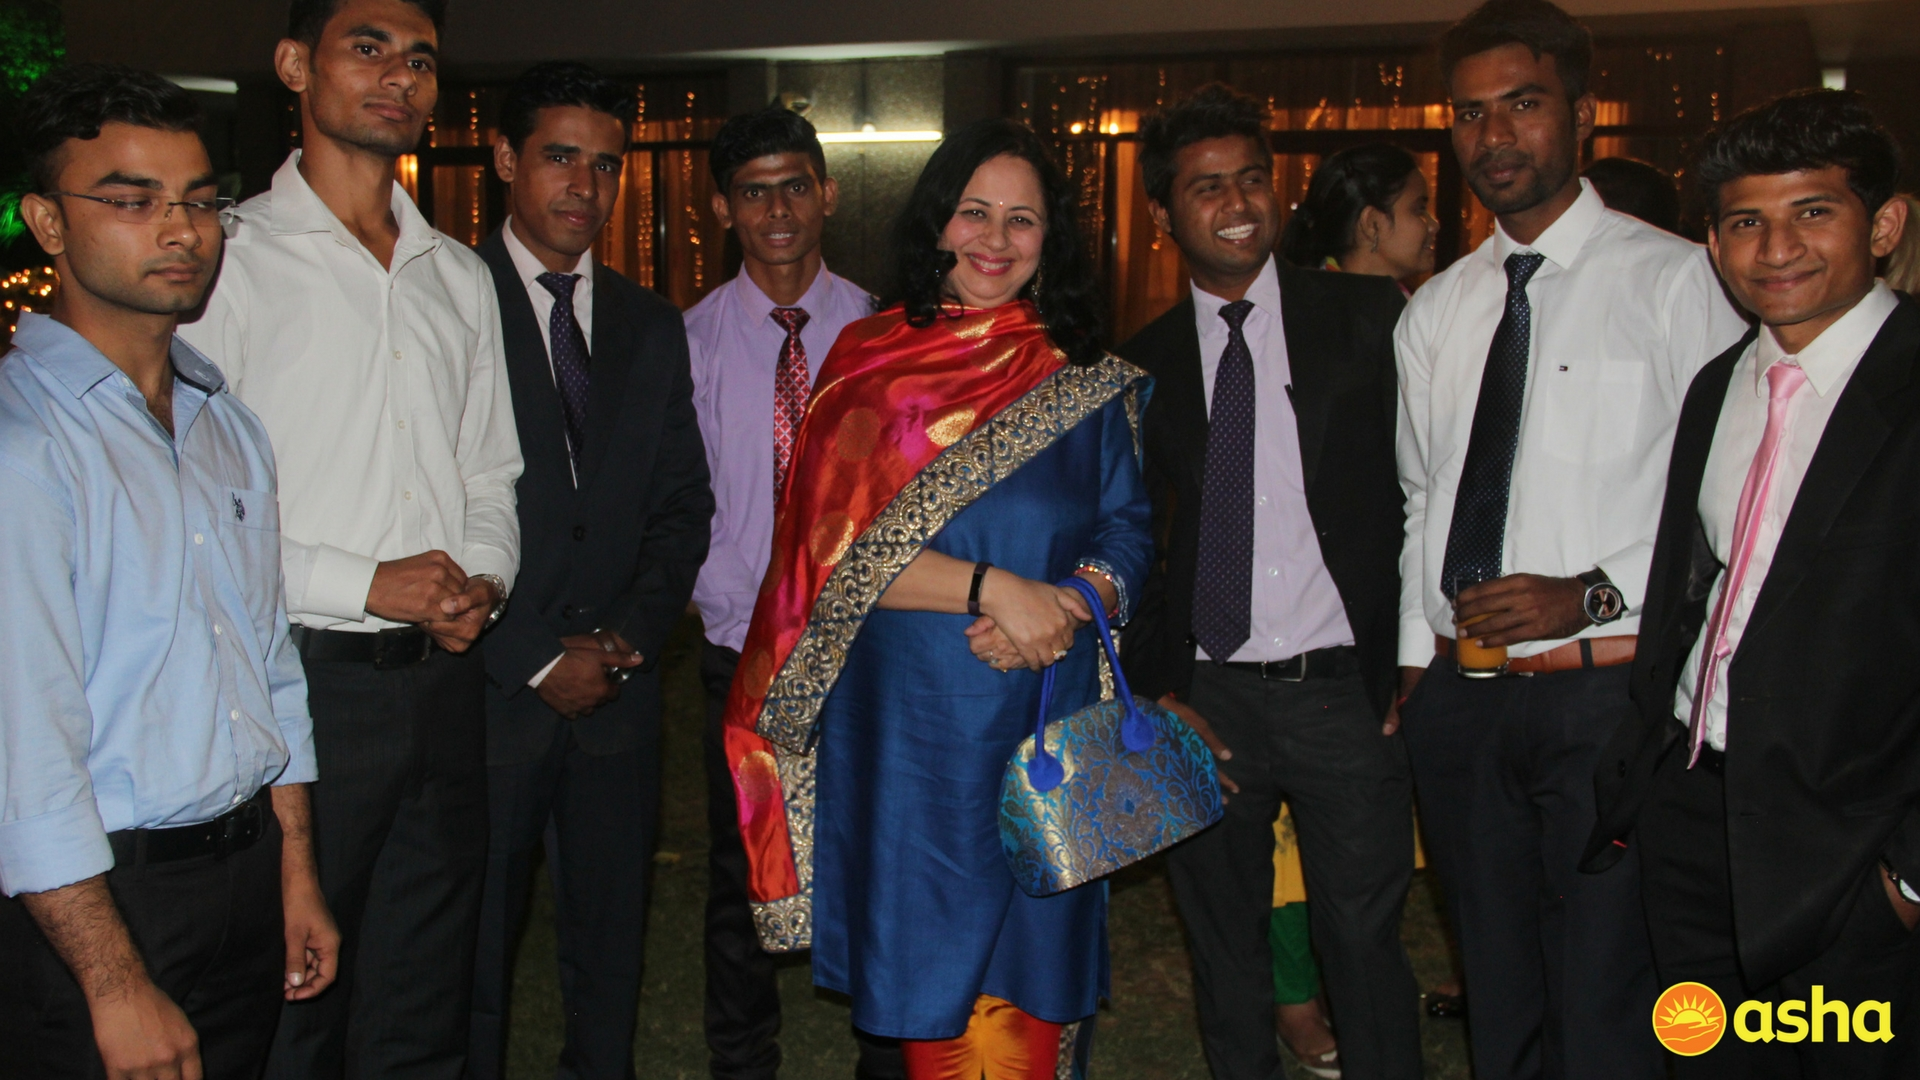 Dr Kiran with the Asha graduates, who are presently placed in leading organisations.